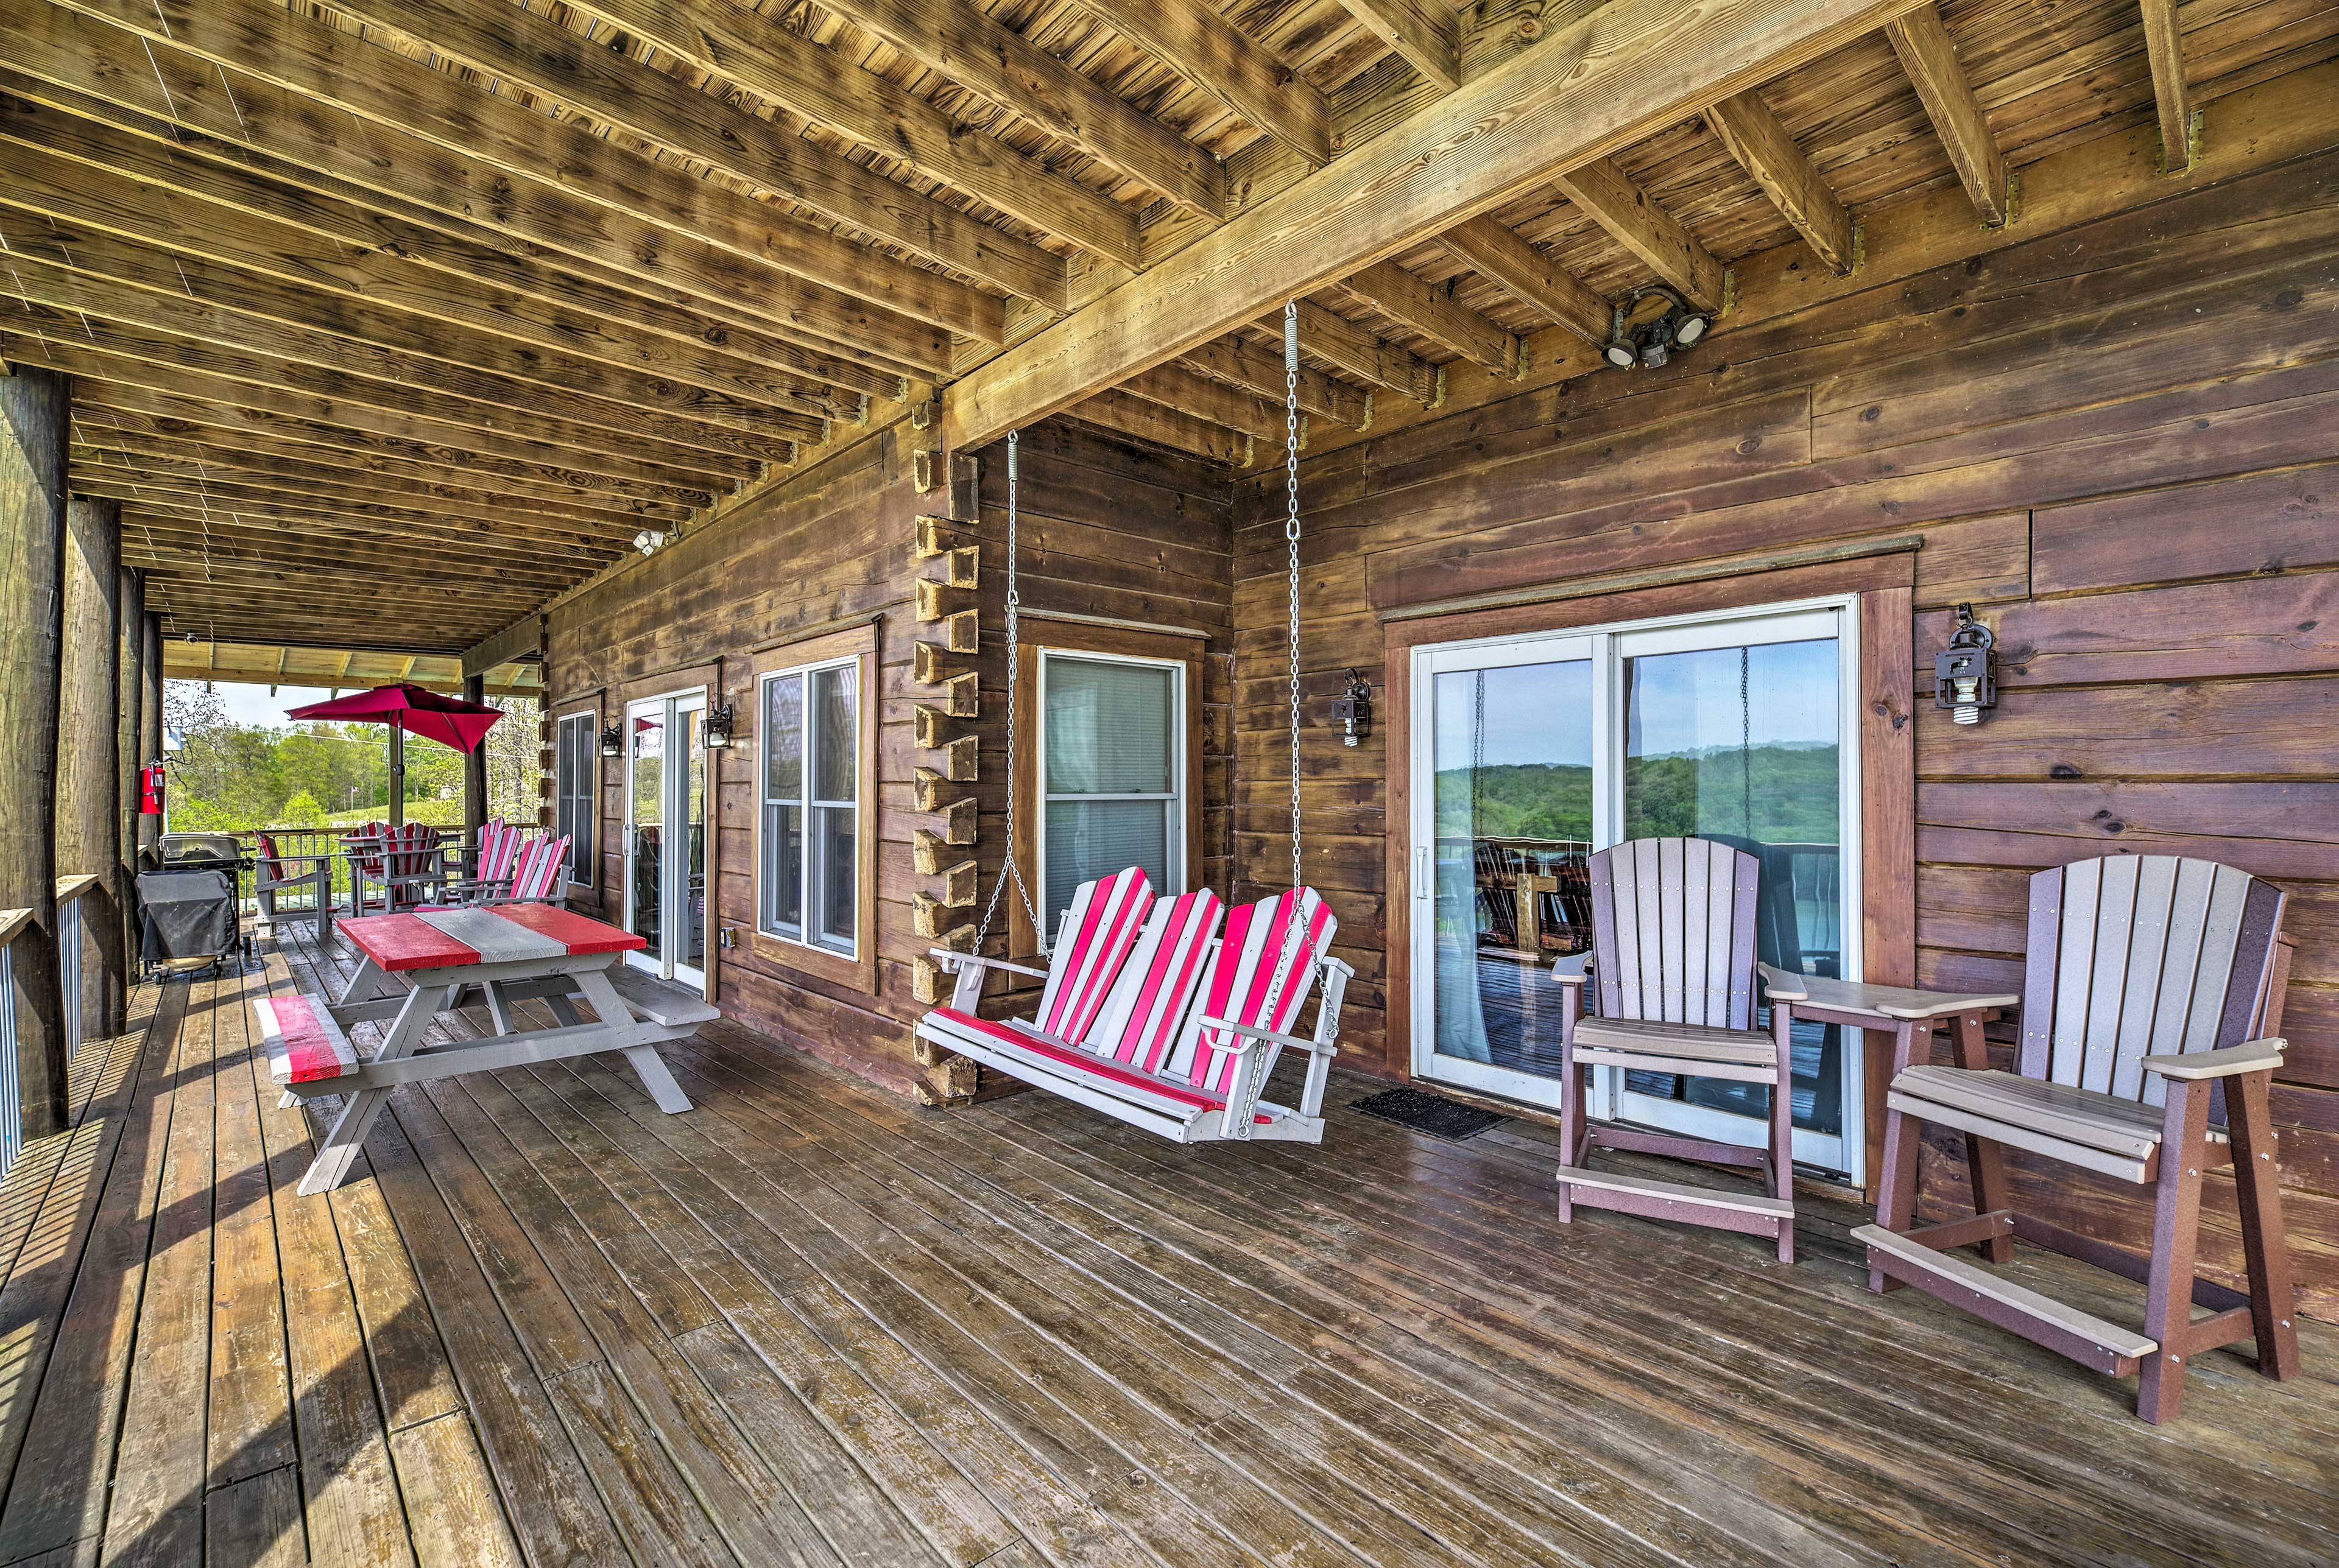 The whole crew will love lounging on the deck!